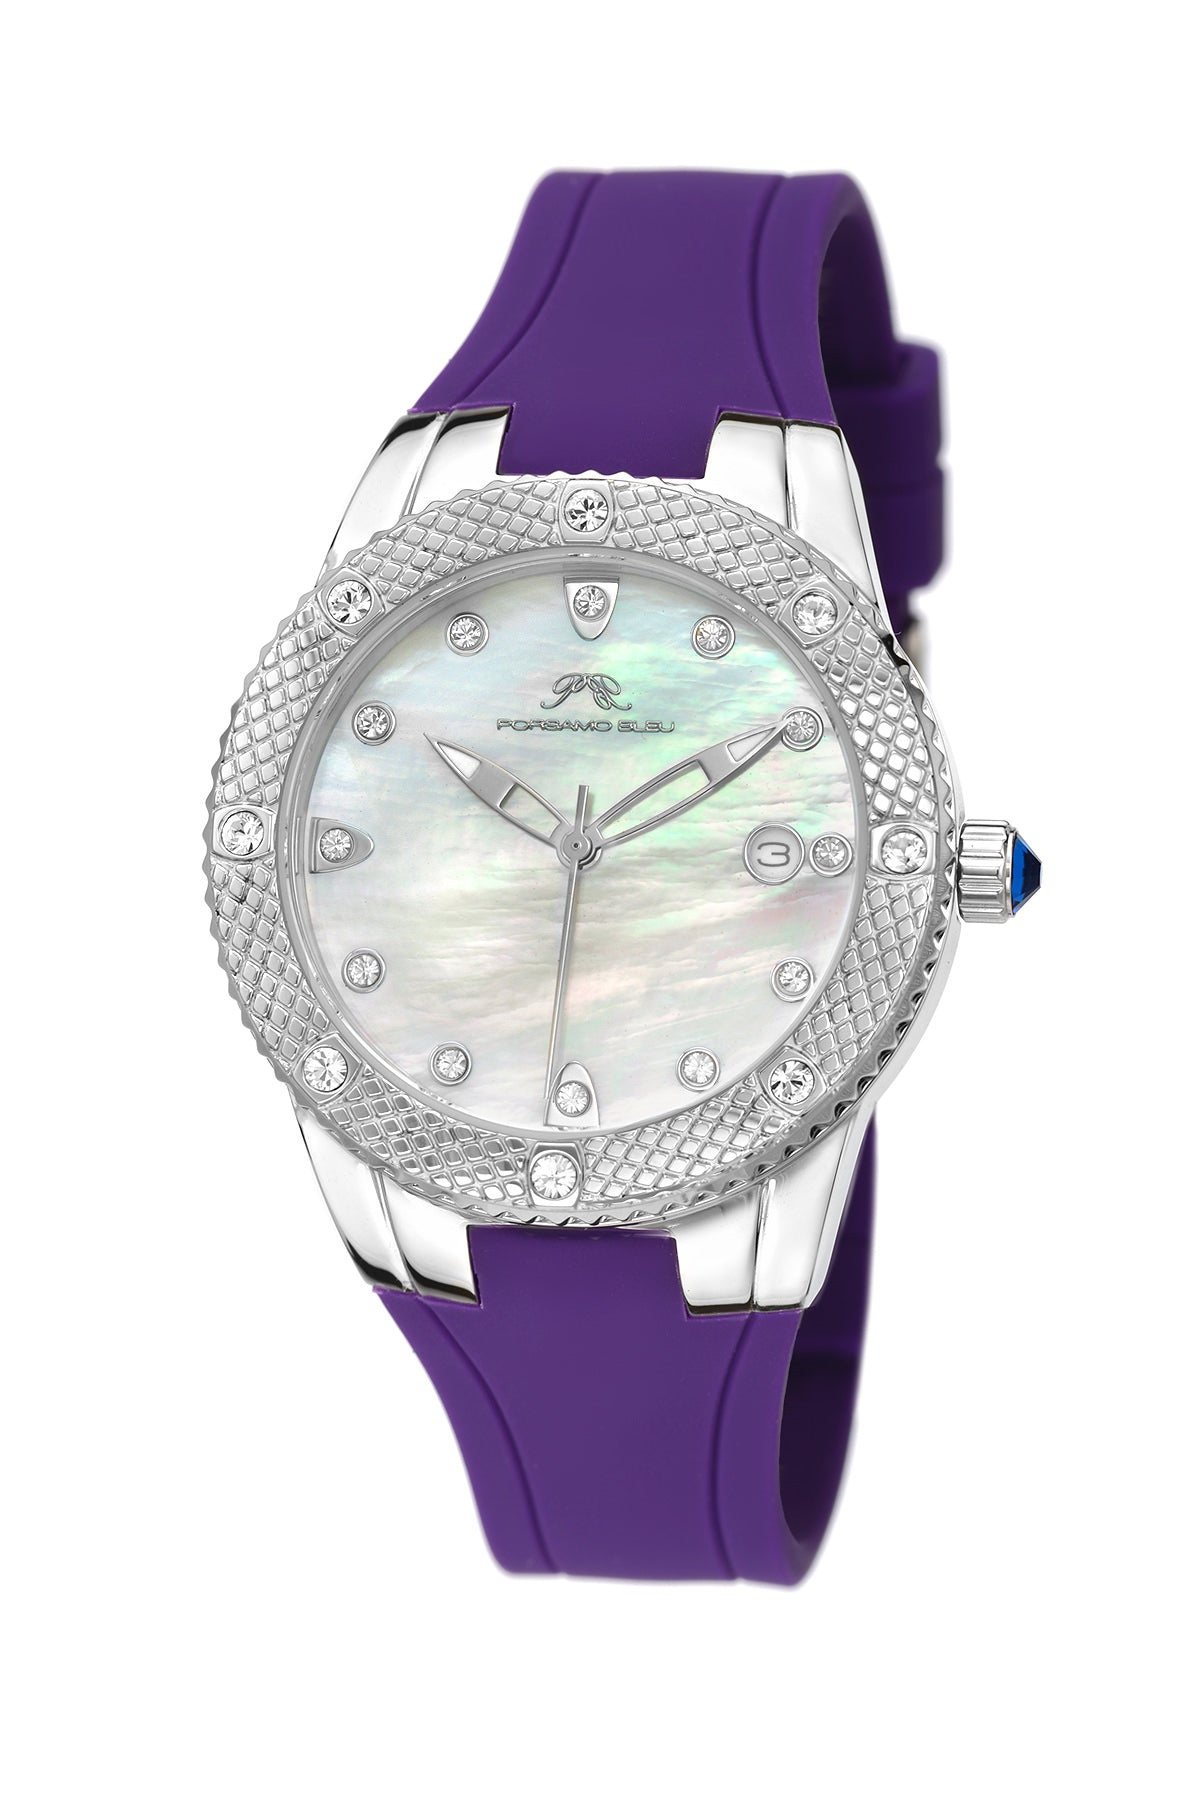 Porsamo Bleu Linda luxury women's watch, silicone strap, silver, purple 493CLIR